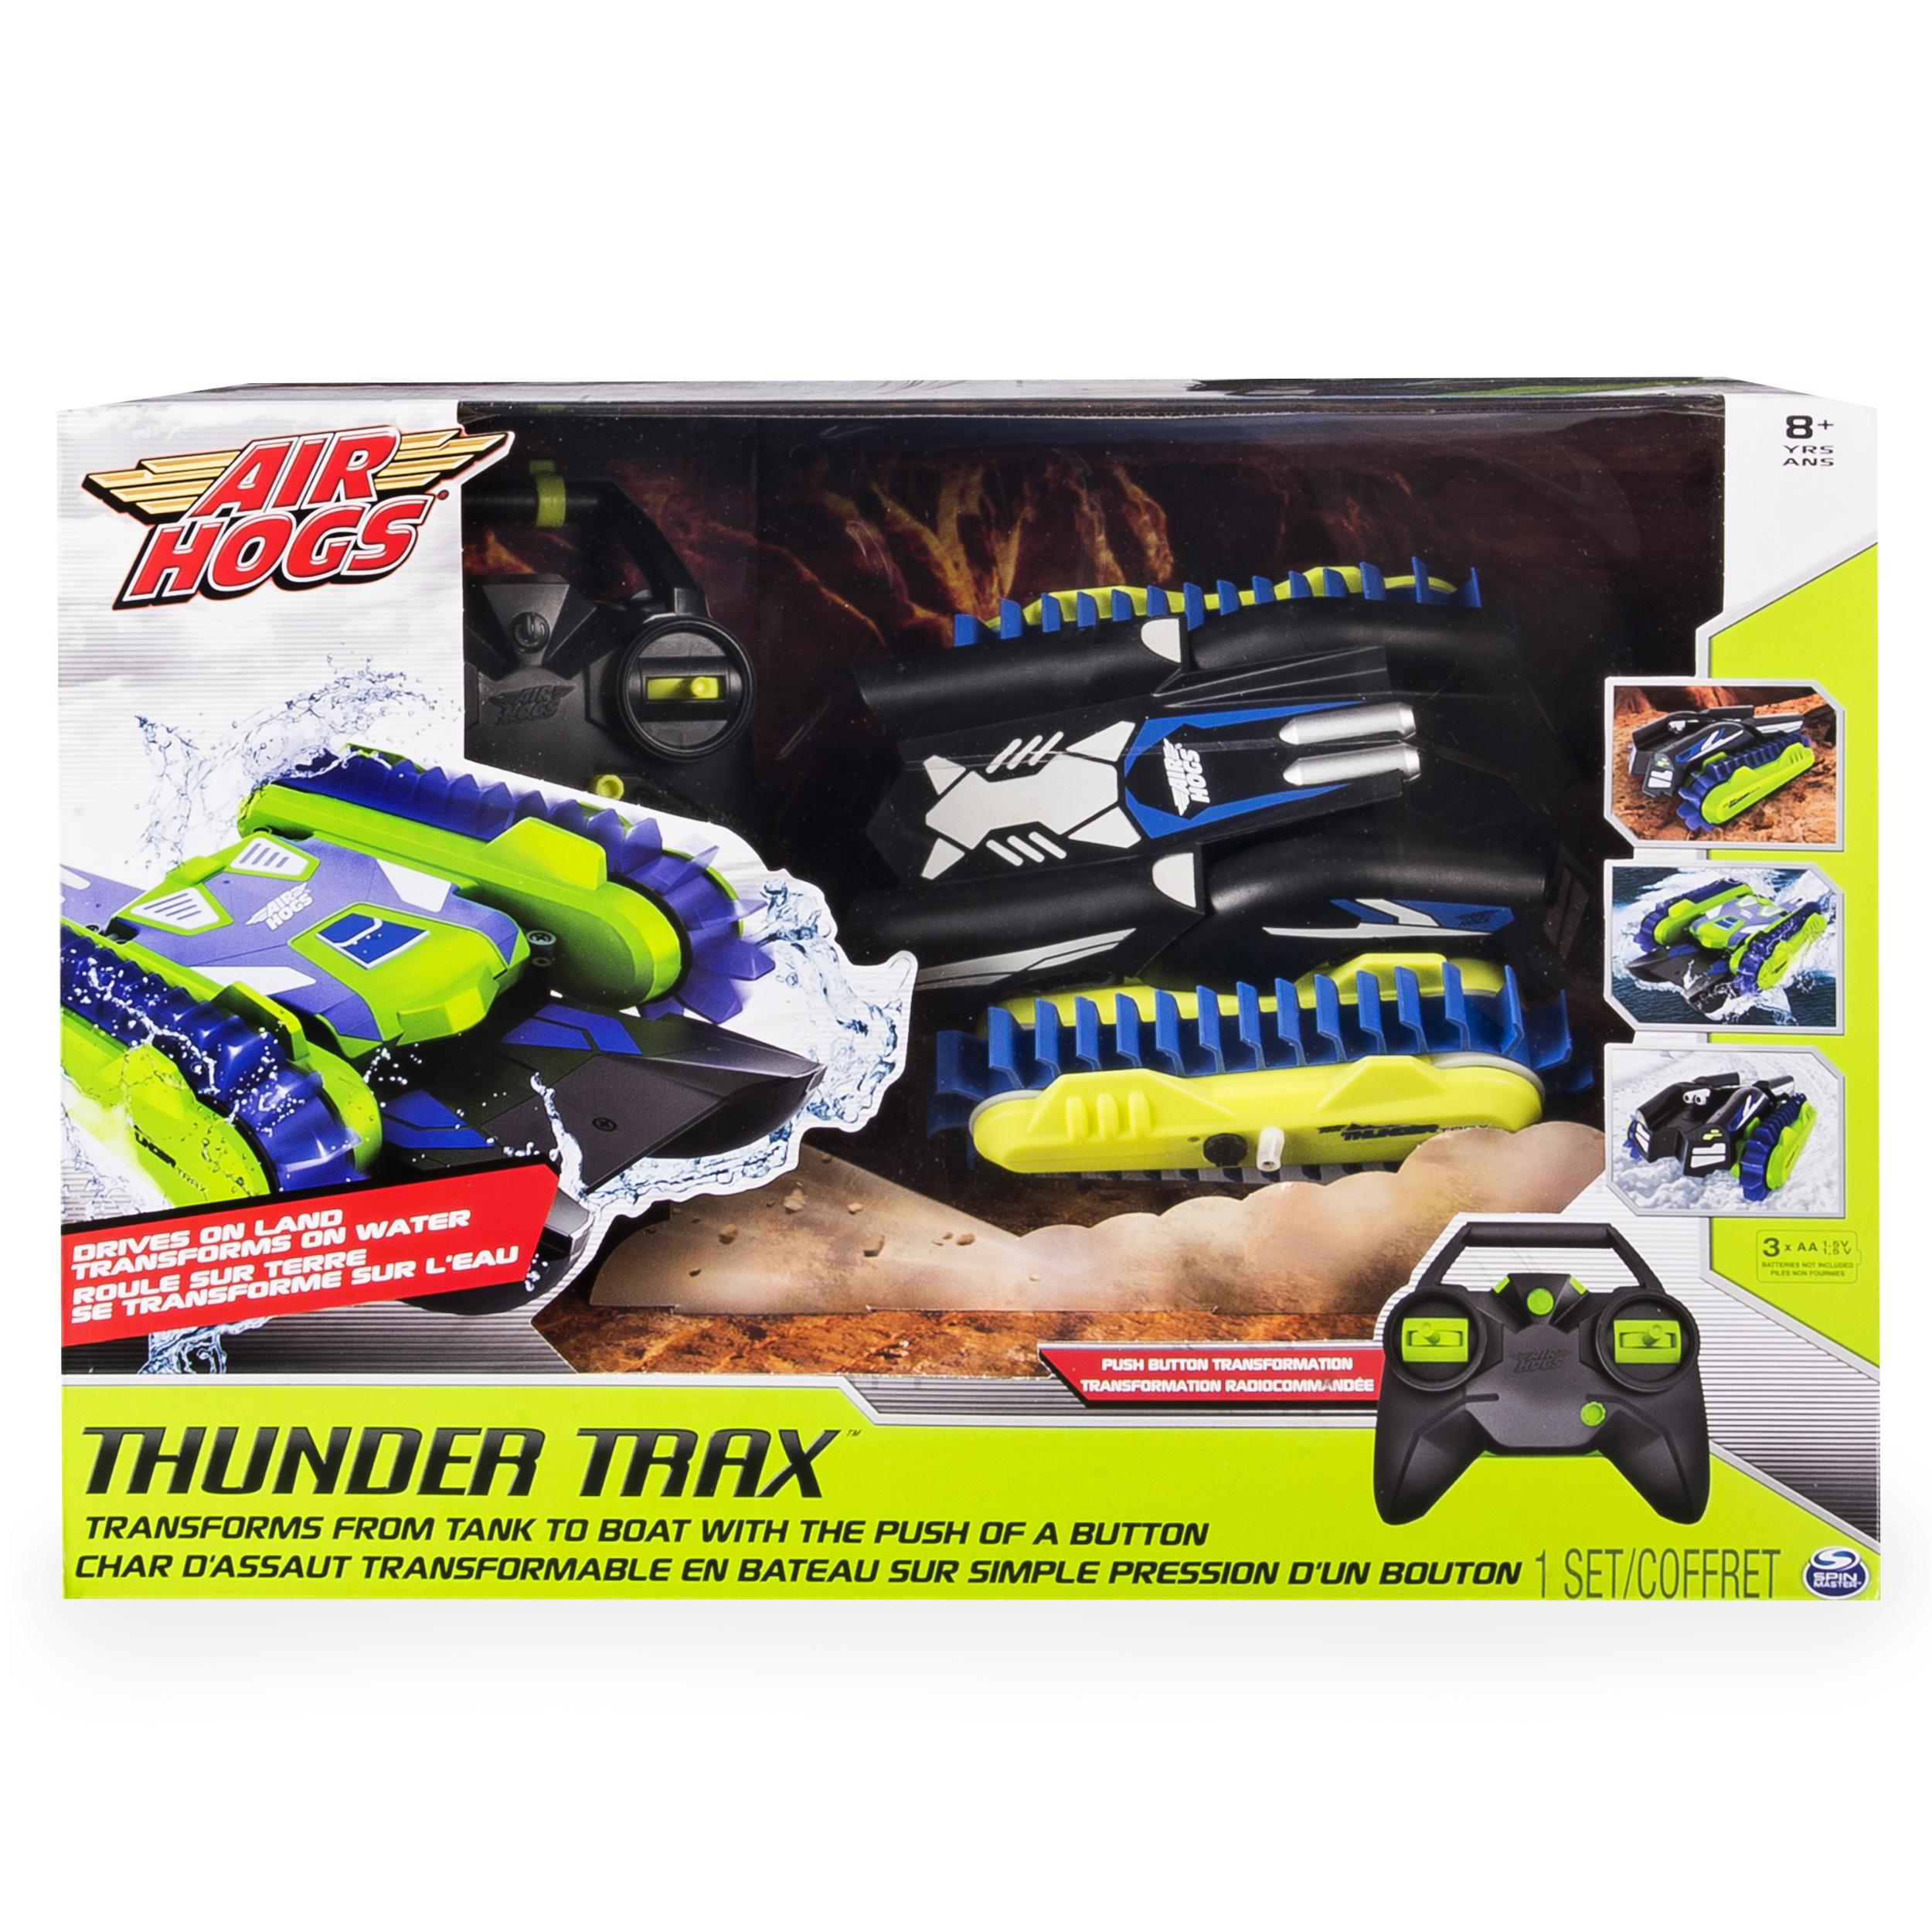 Amazon.com: Air Hogs, Thunder Trax RC Vehicle, 2.4 GHZ ...